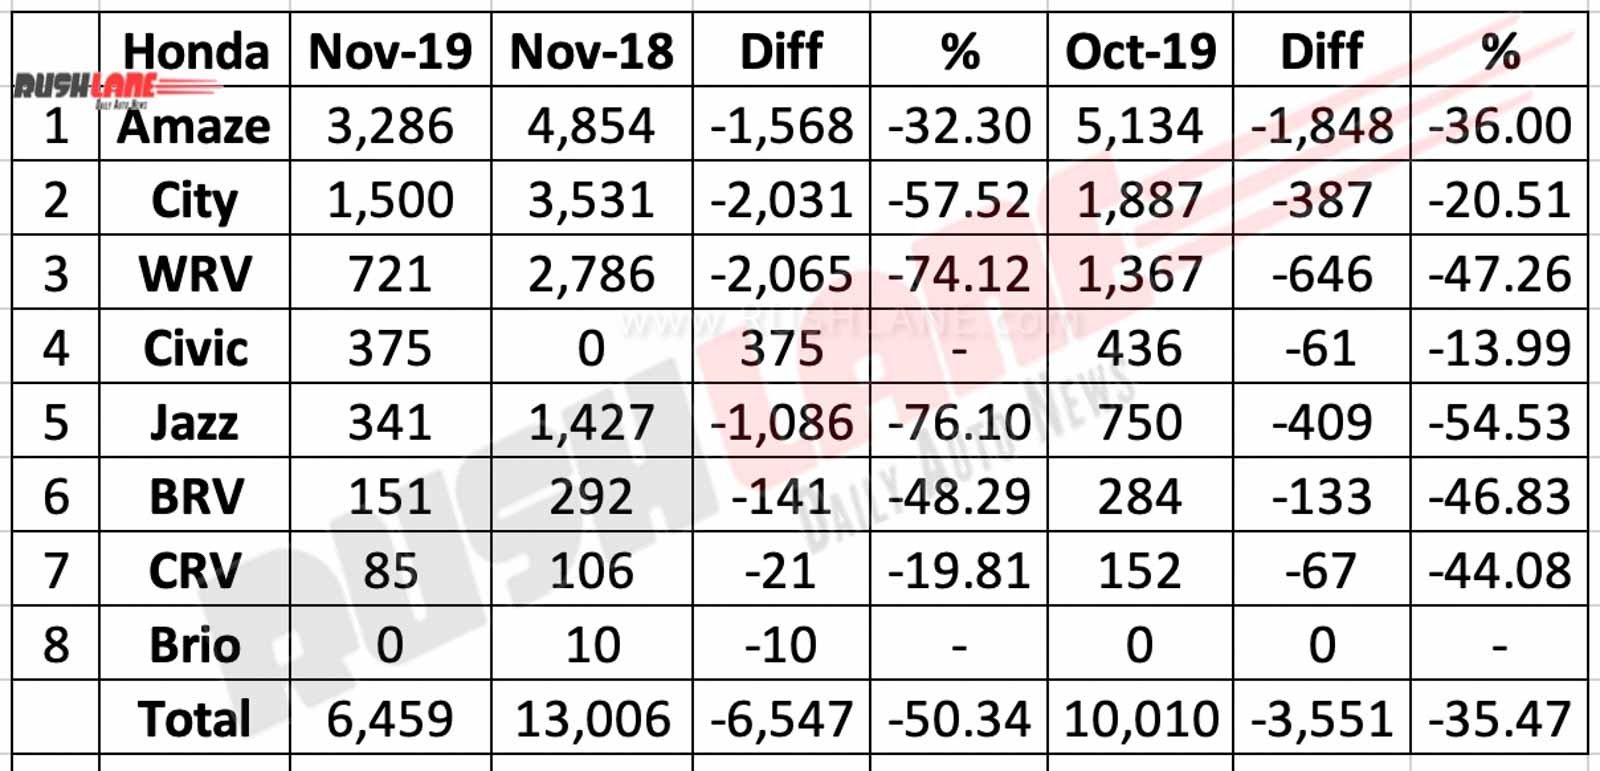 Honda cars sales break up Nov 2019